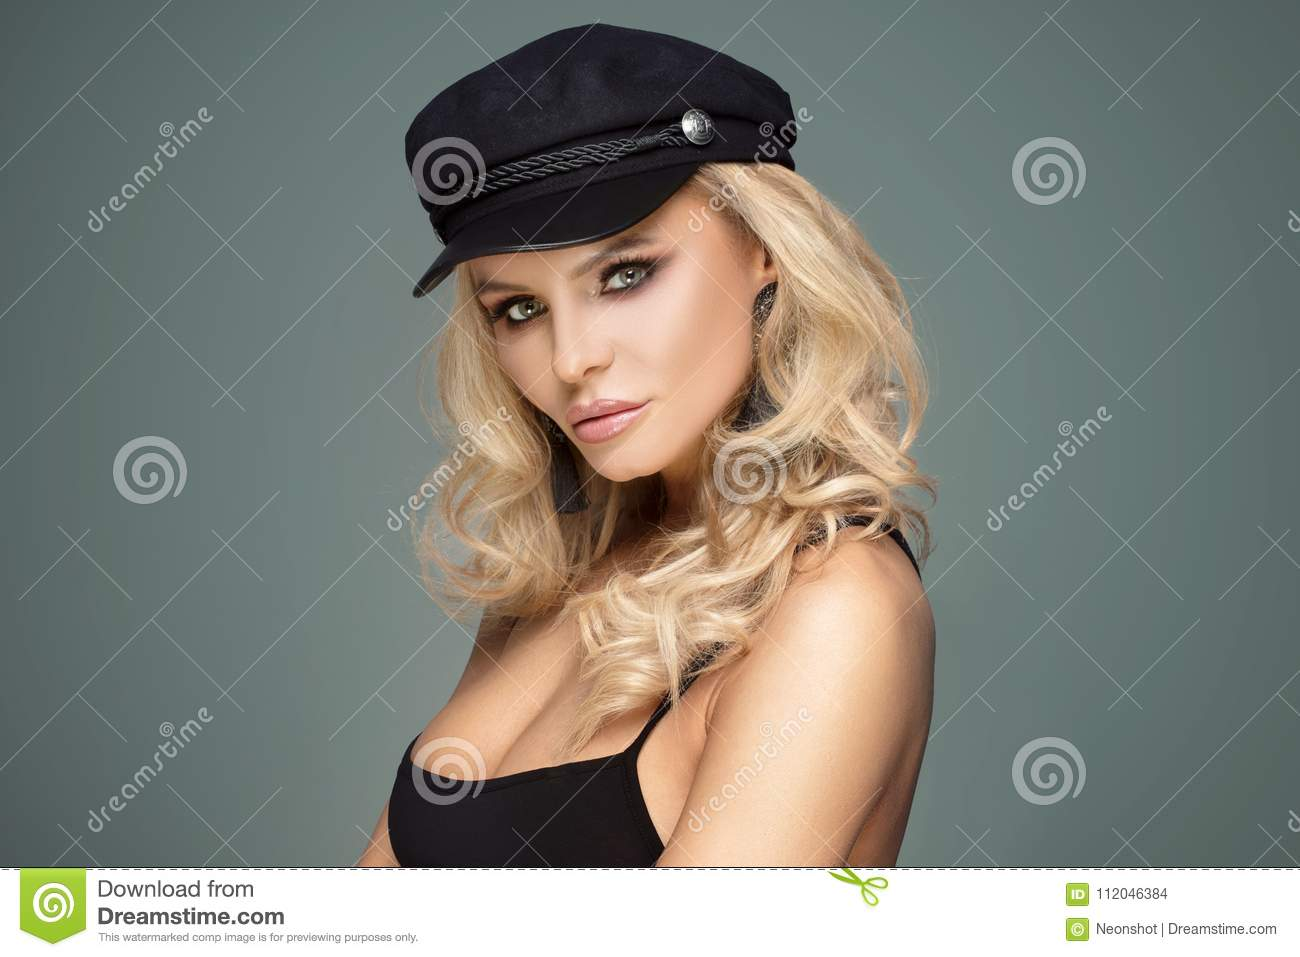 472f6298f04c1 French style female model posing in black beret. Blonde beautiful woman  with glamour makeup and long curly hair.